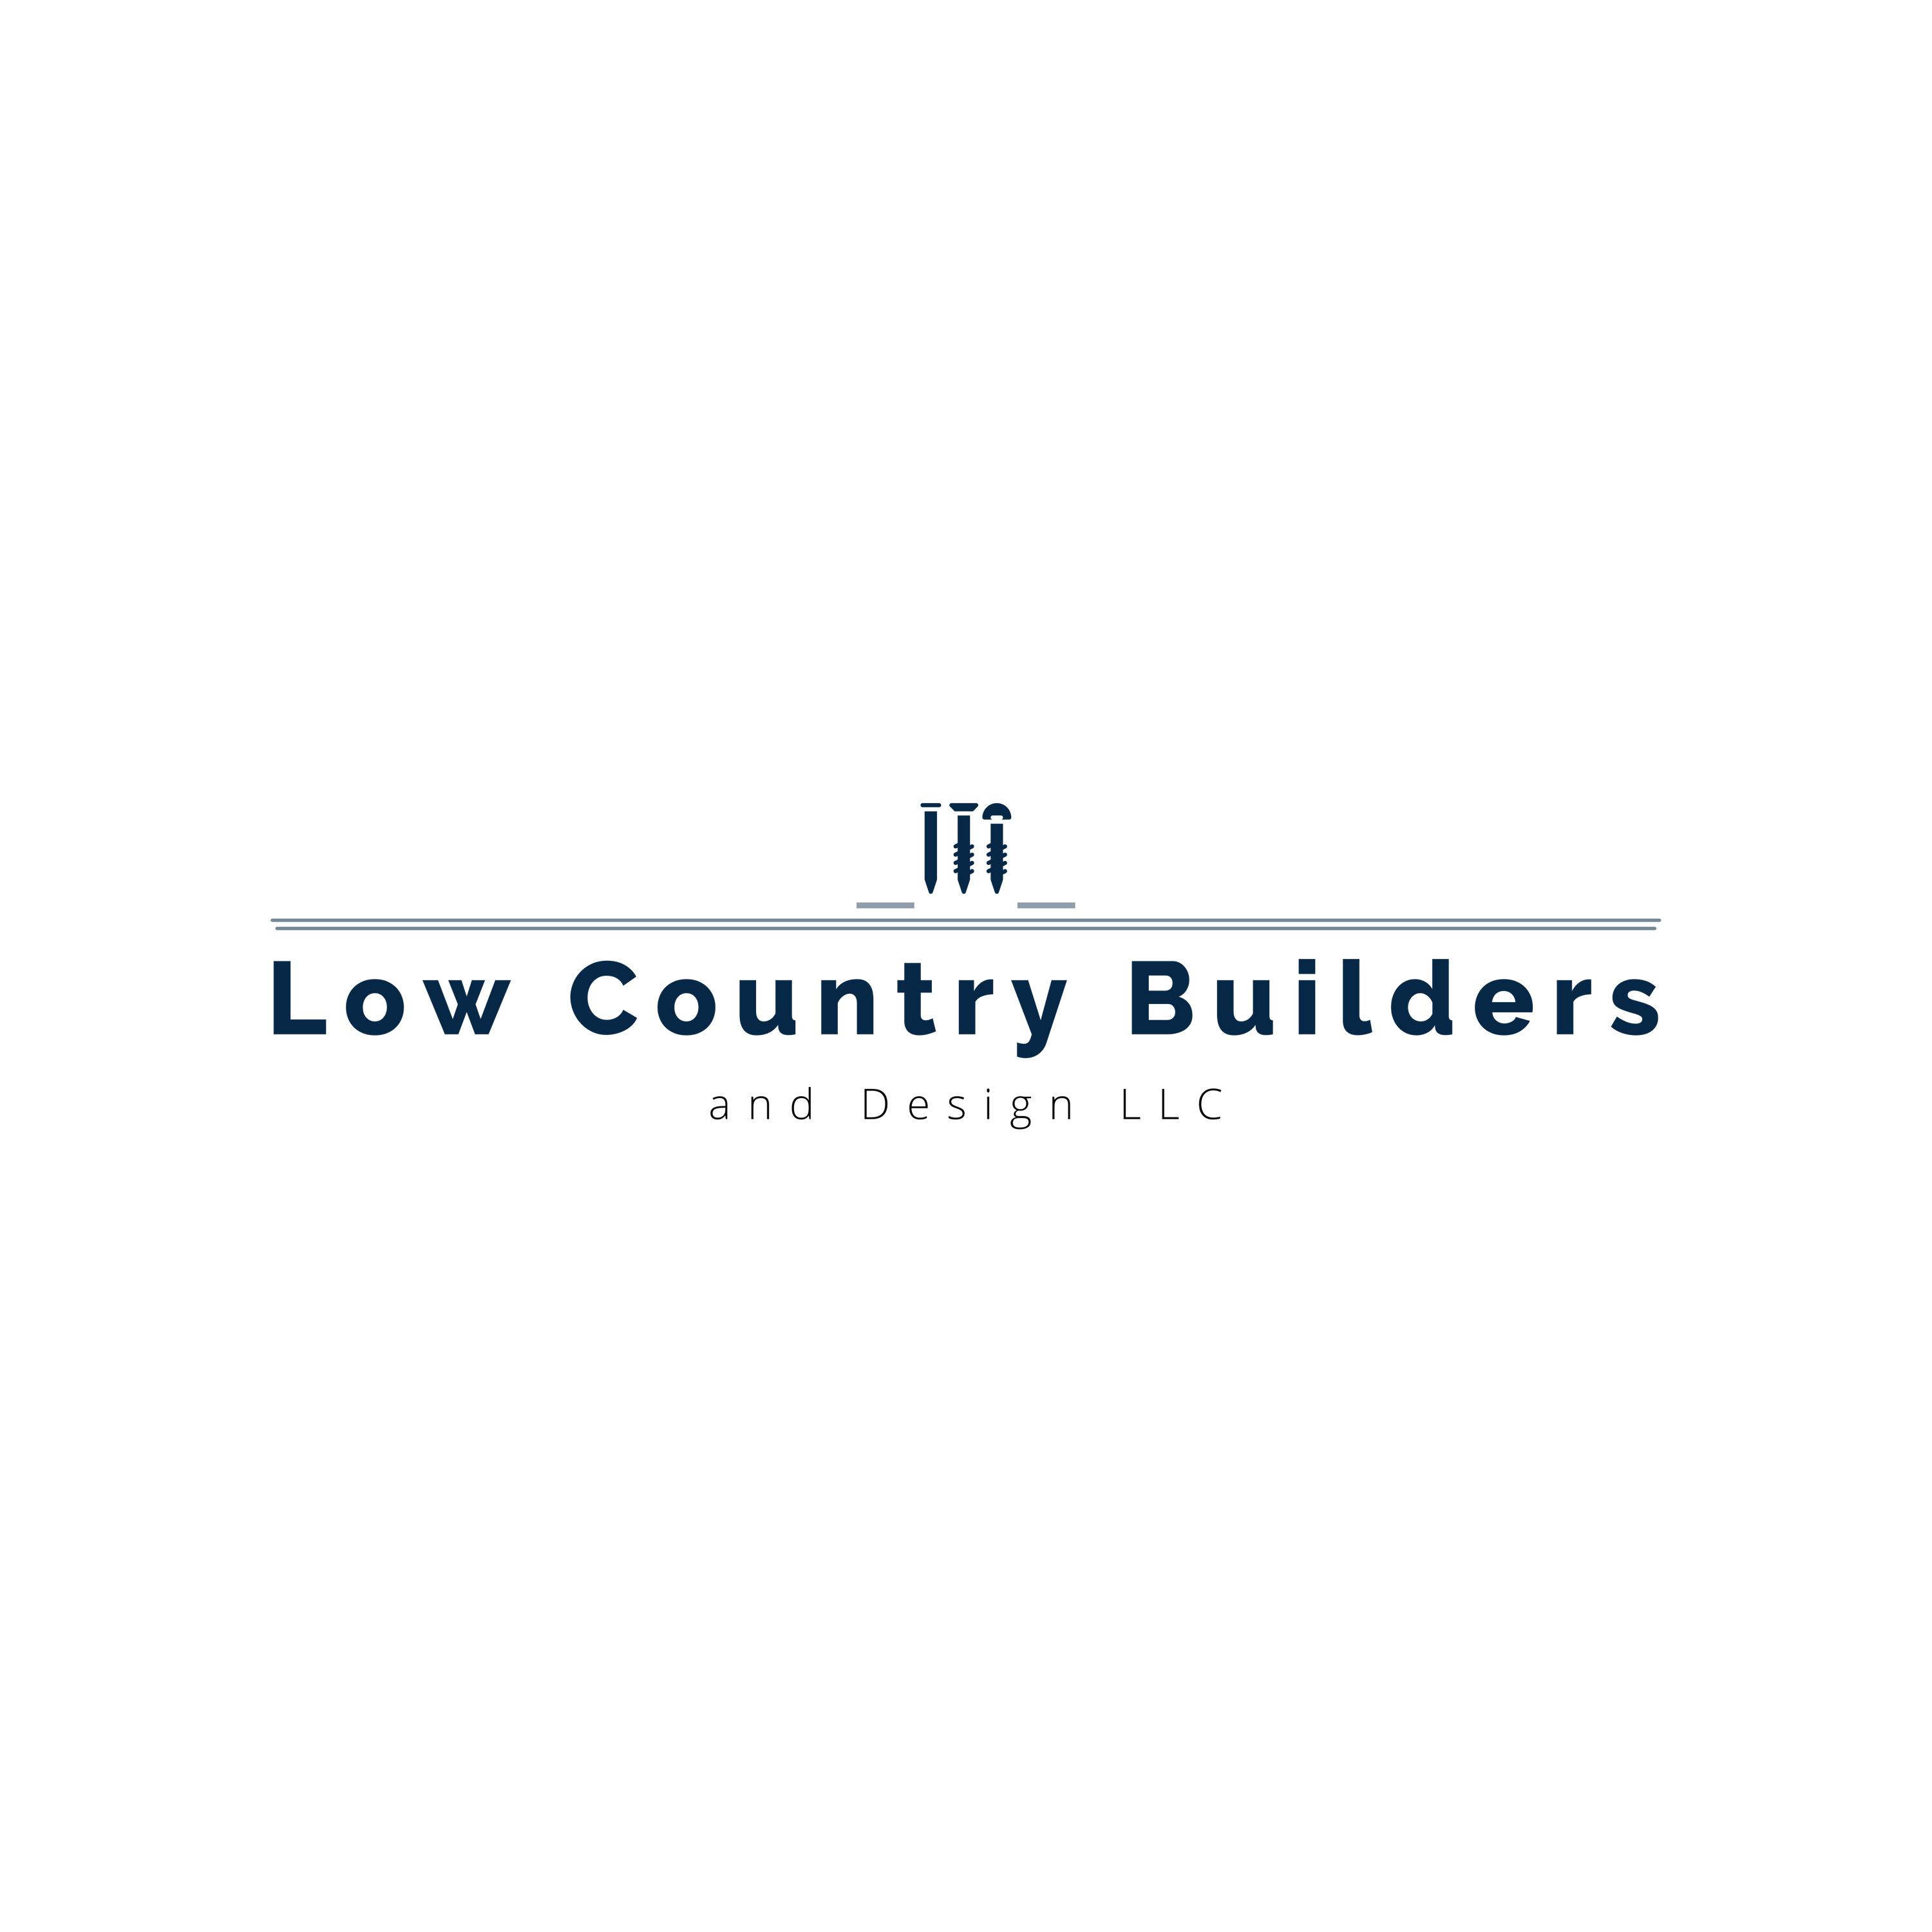 Low Country Builders